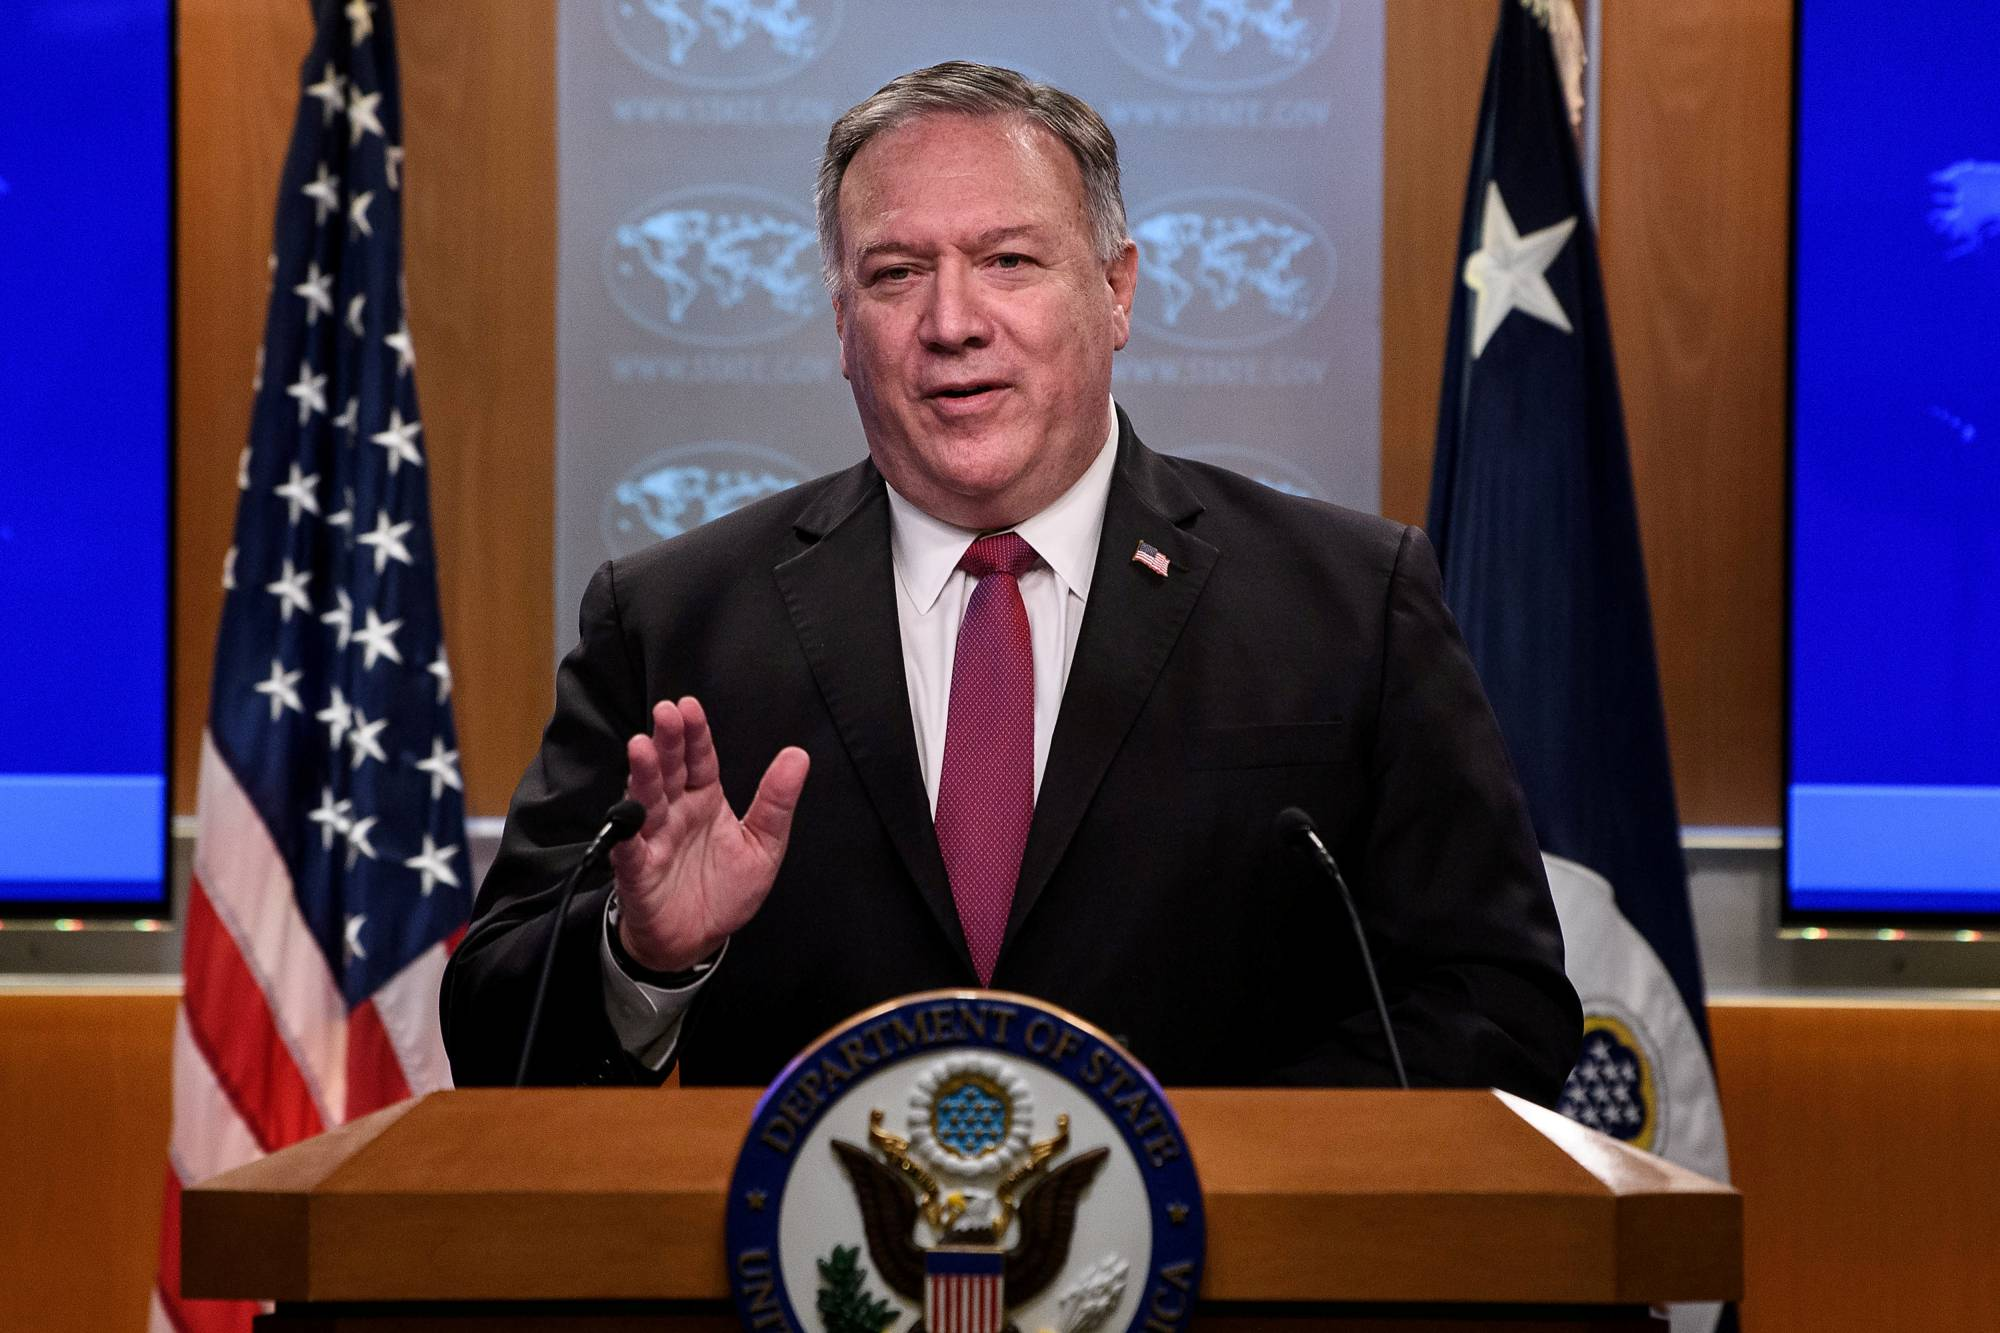 U.S. Secretary of State Mike Pompeo, seen on Oct. 21, outlined in a September statement that the U.S. will tighten restrictions on Chinese diplomats in the country under the principle of reciprocity. | POOL / VIA REUTERS